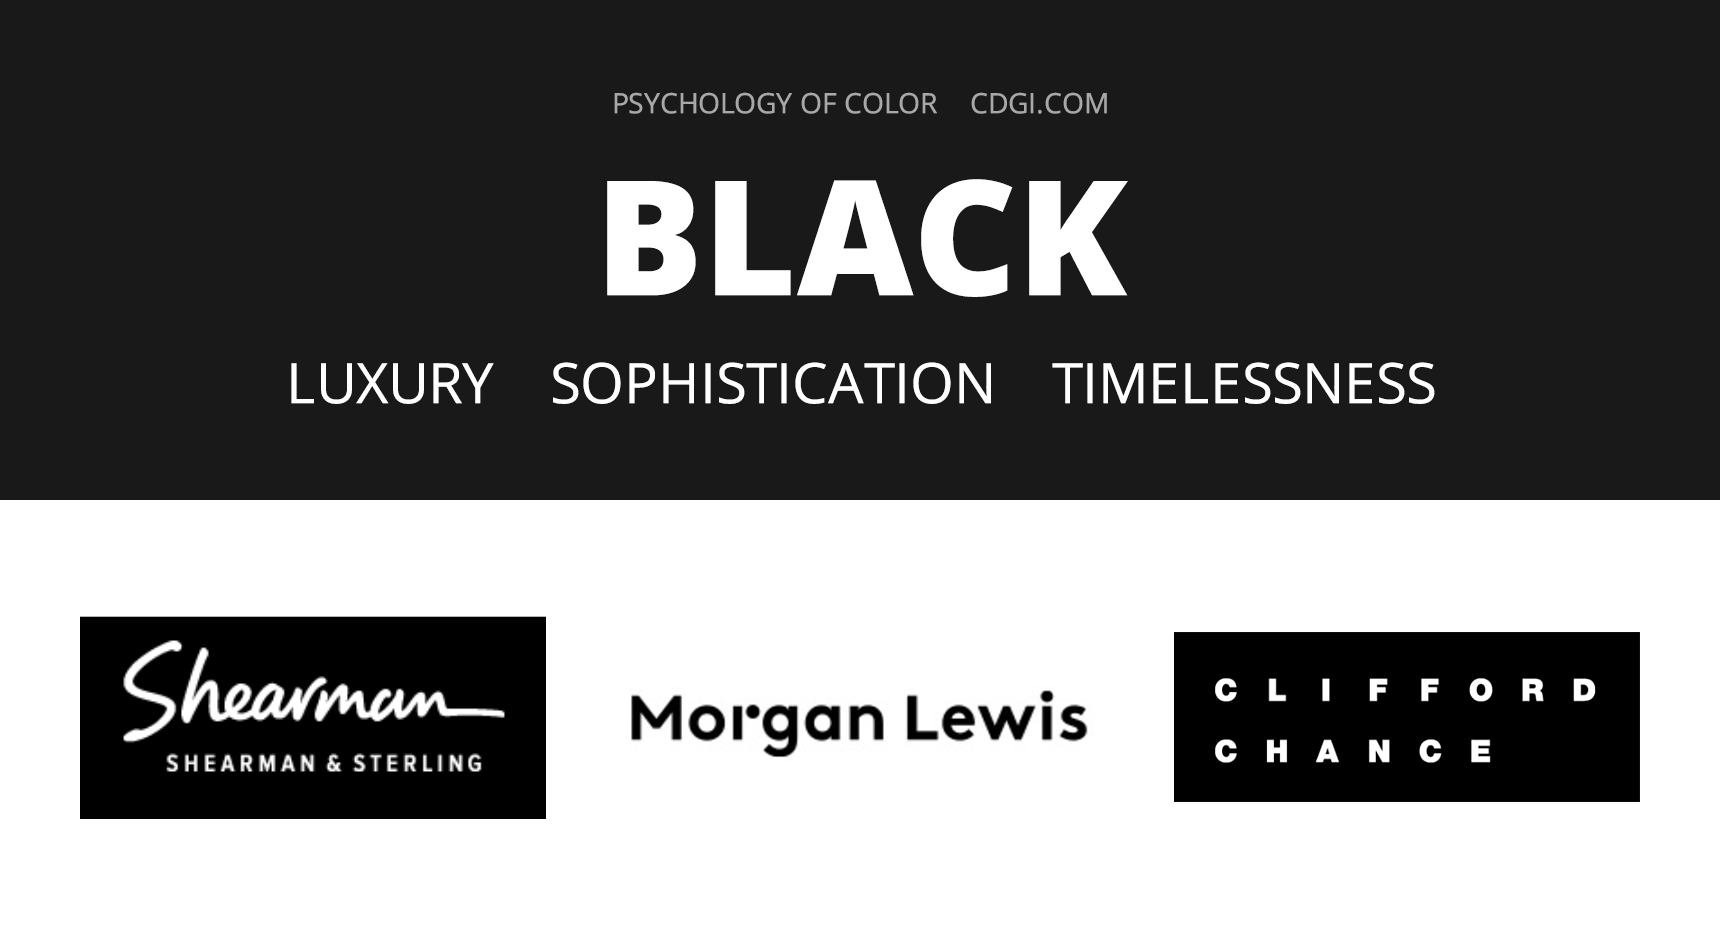 Black: Luxury, Sophistication, Timelessness